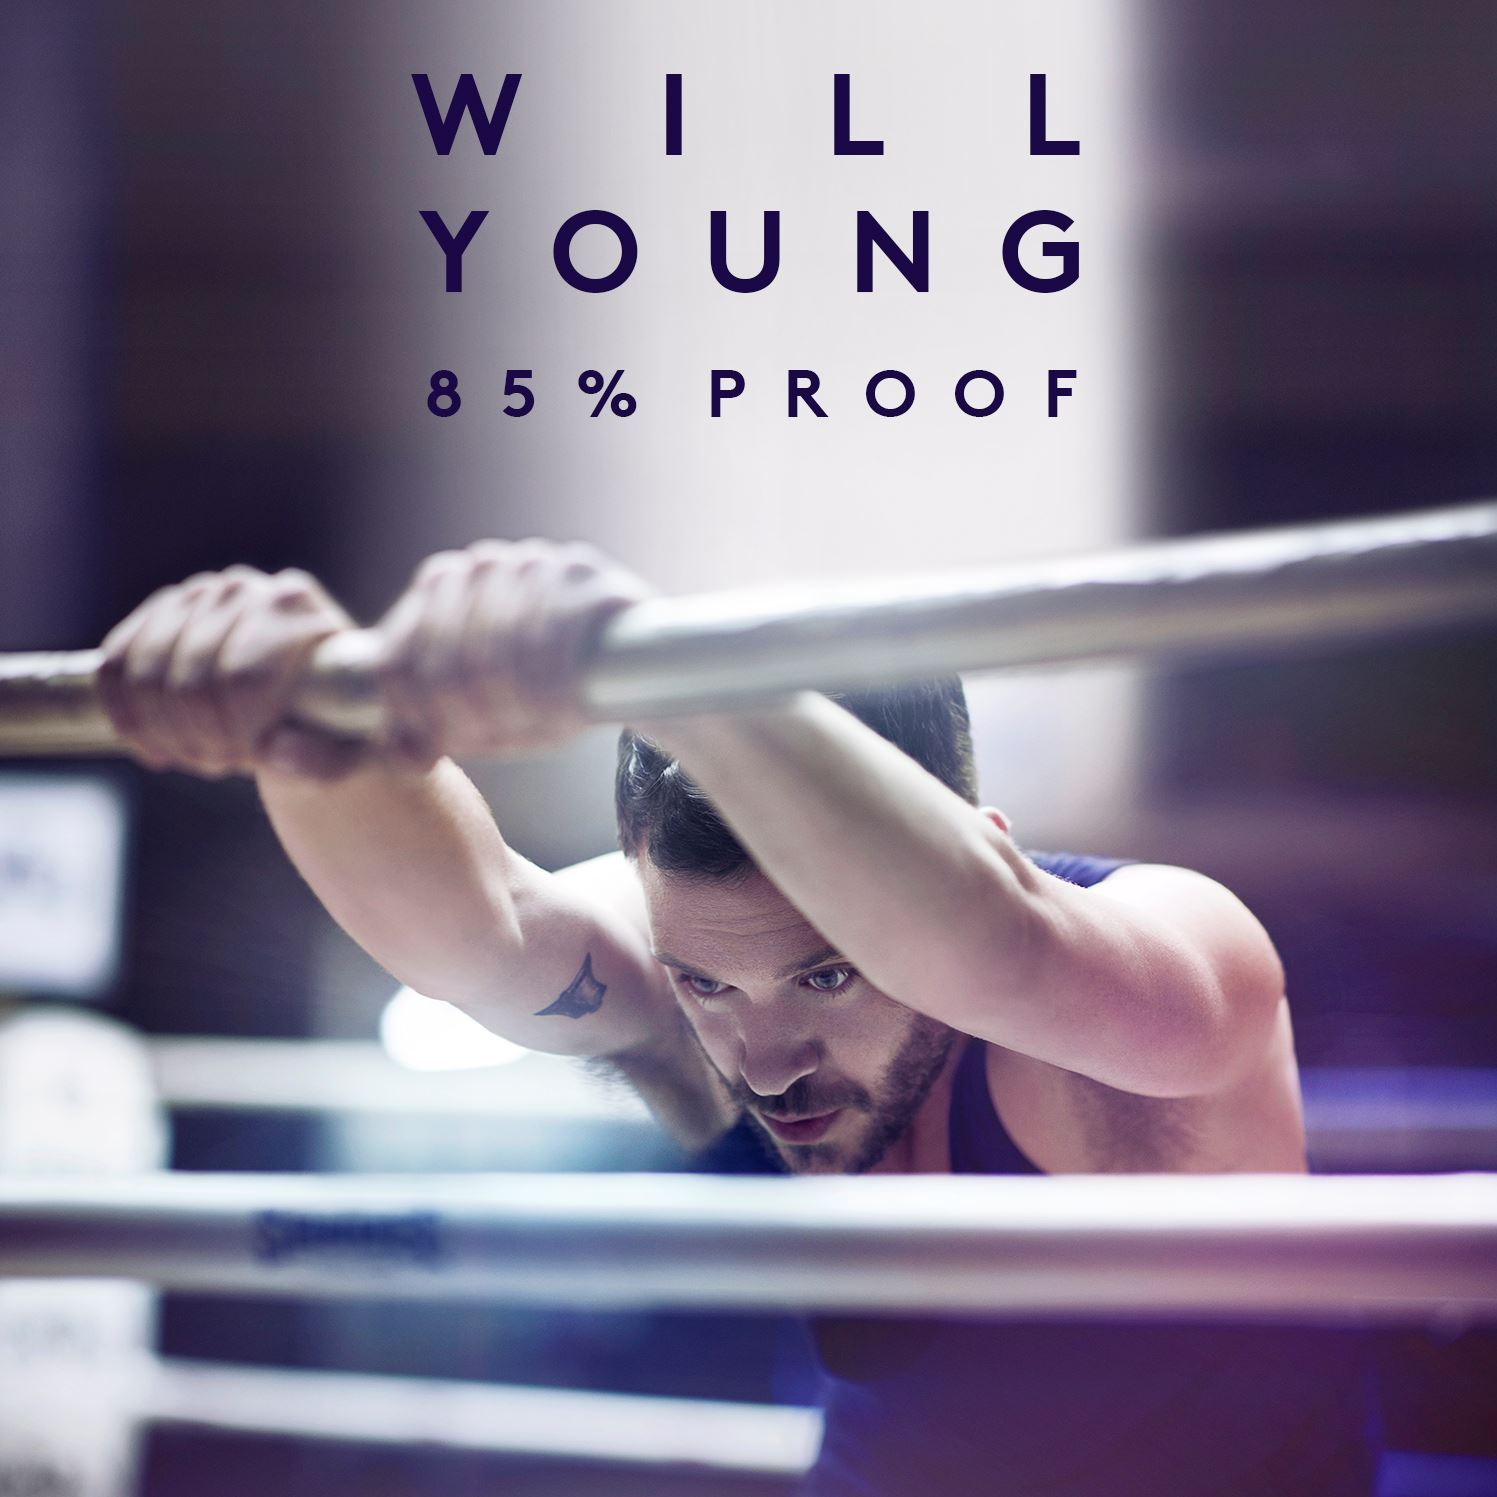 Will young 85% proof. Someone somewhere had to download a copy of this to save their family